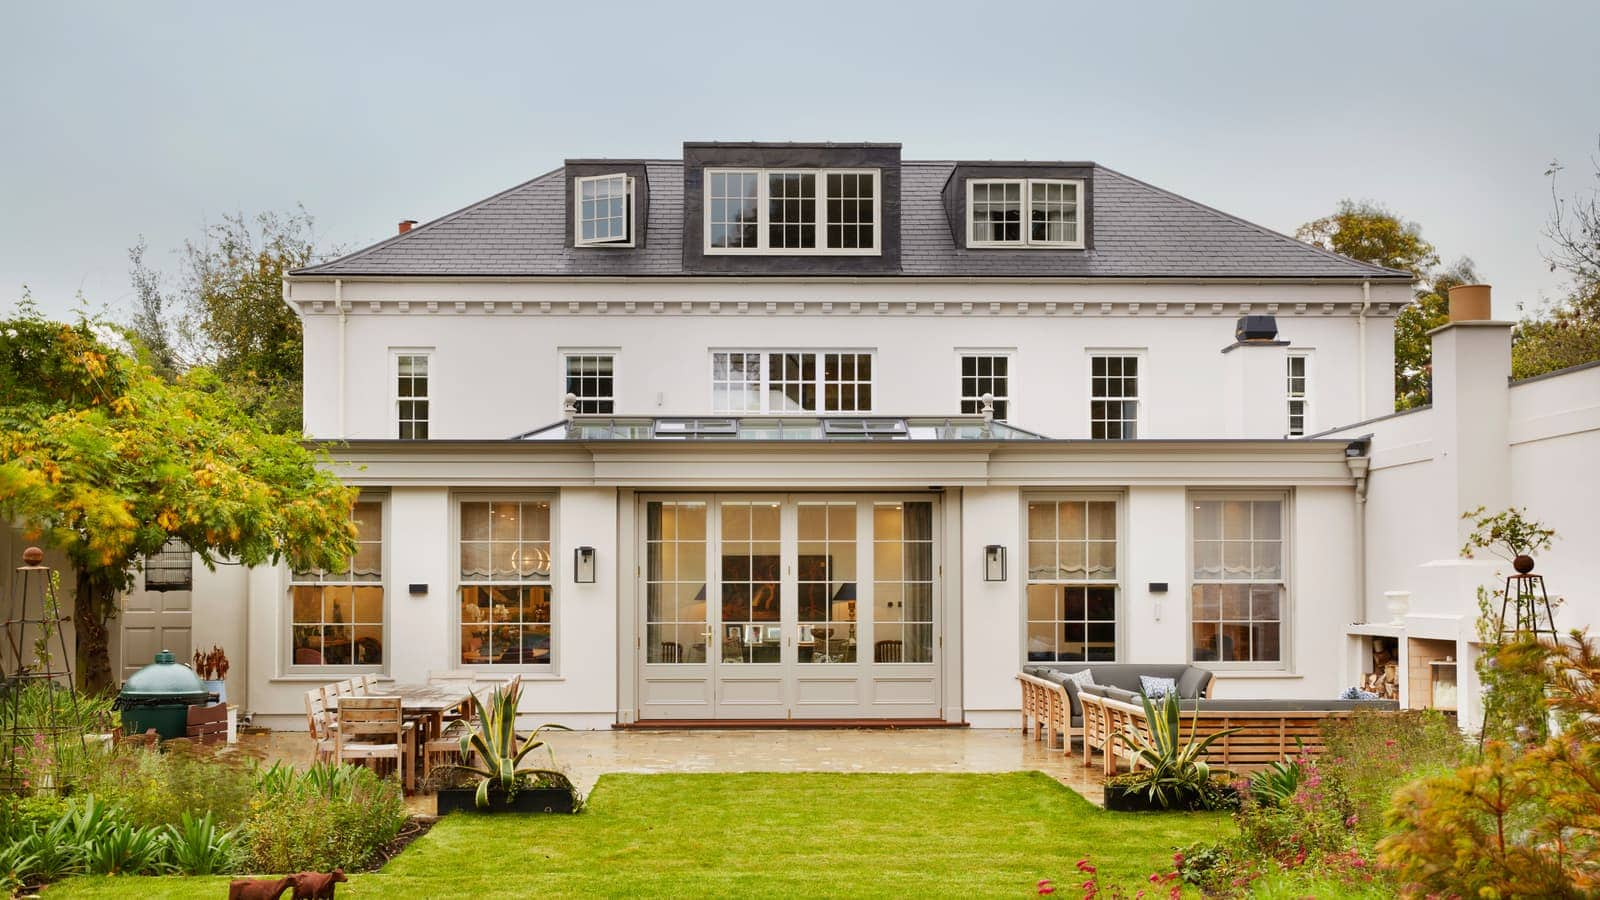 Beautiful Georgian house with large orangery extension with French doors opening onto the garden